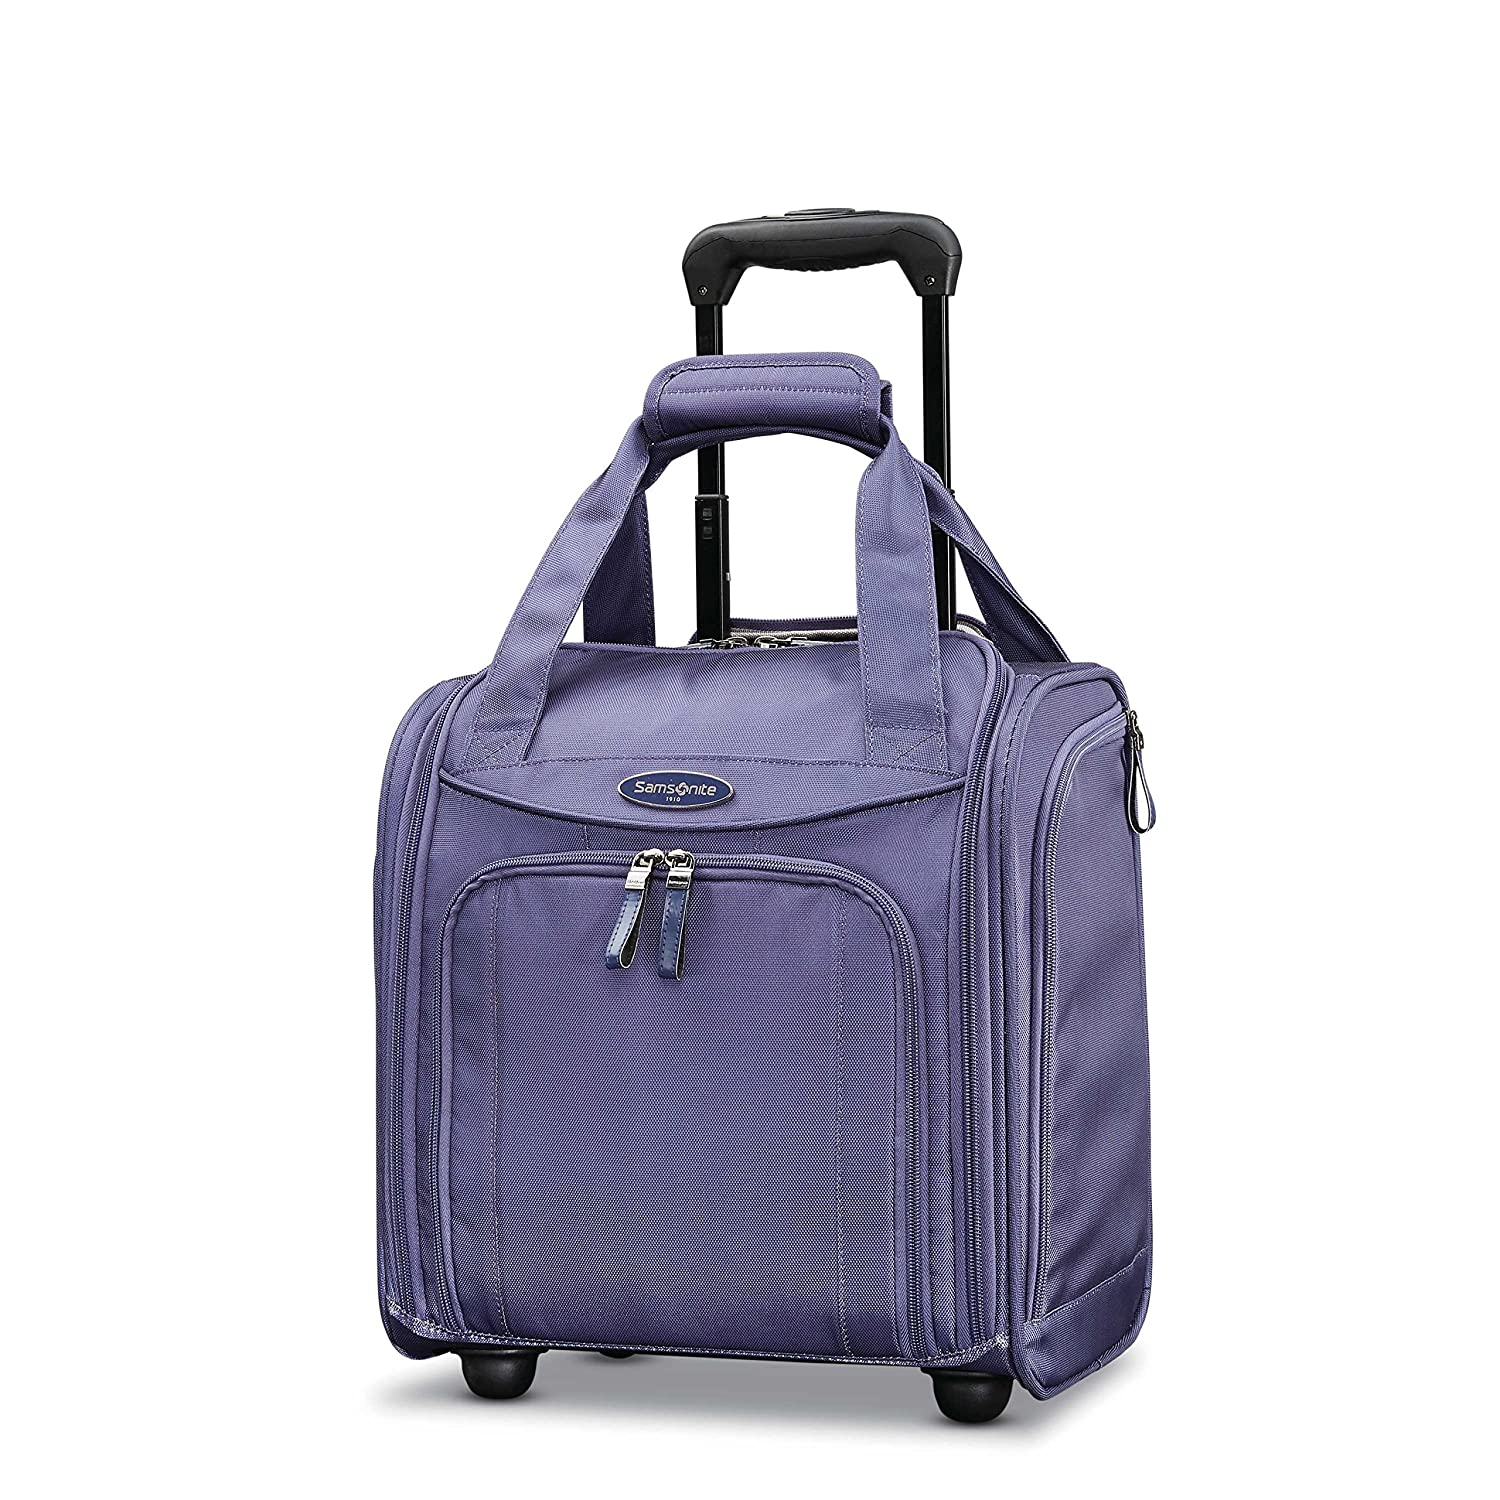 Samsonite Small Wheeled Underseater, Deep Teal Samsonite- Import 55476-6071